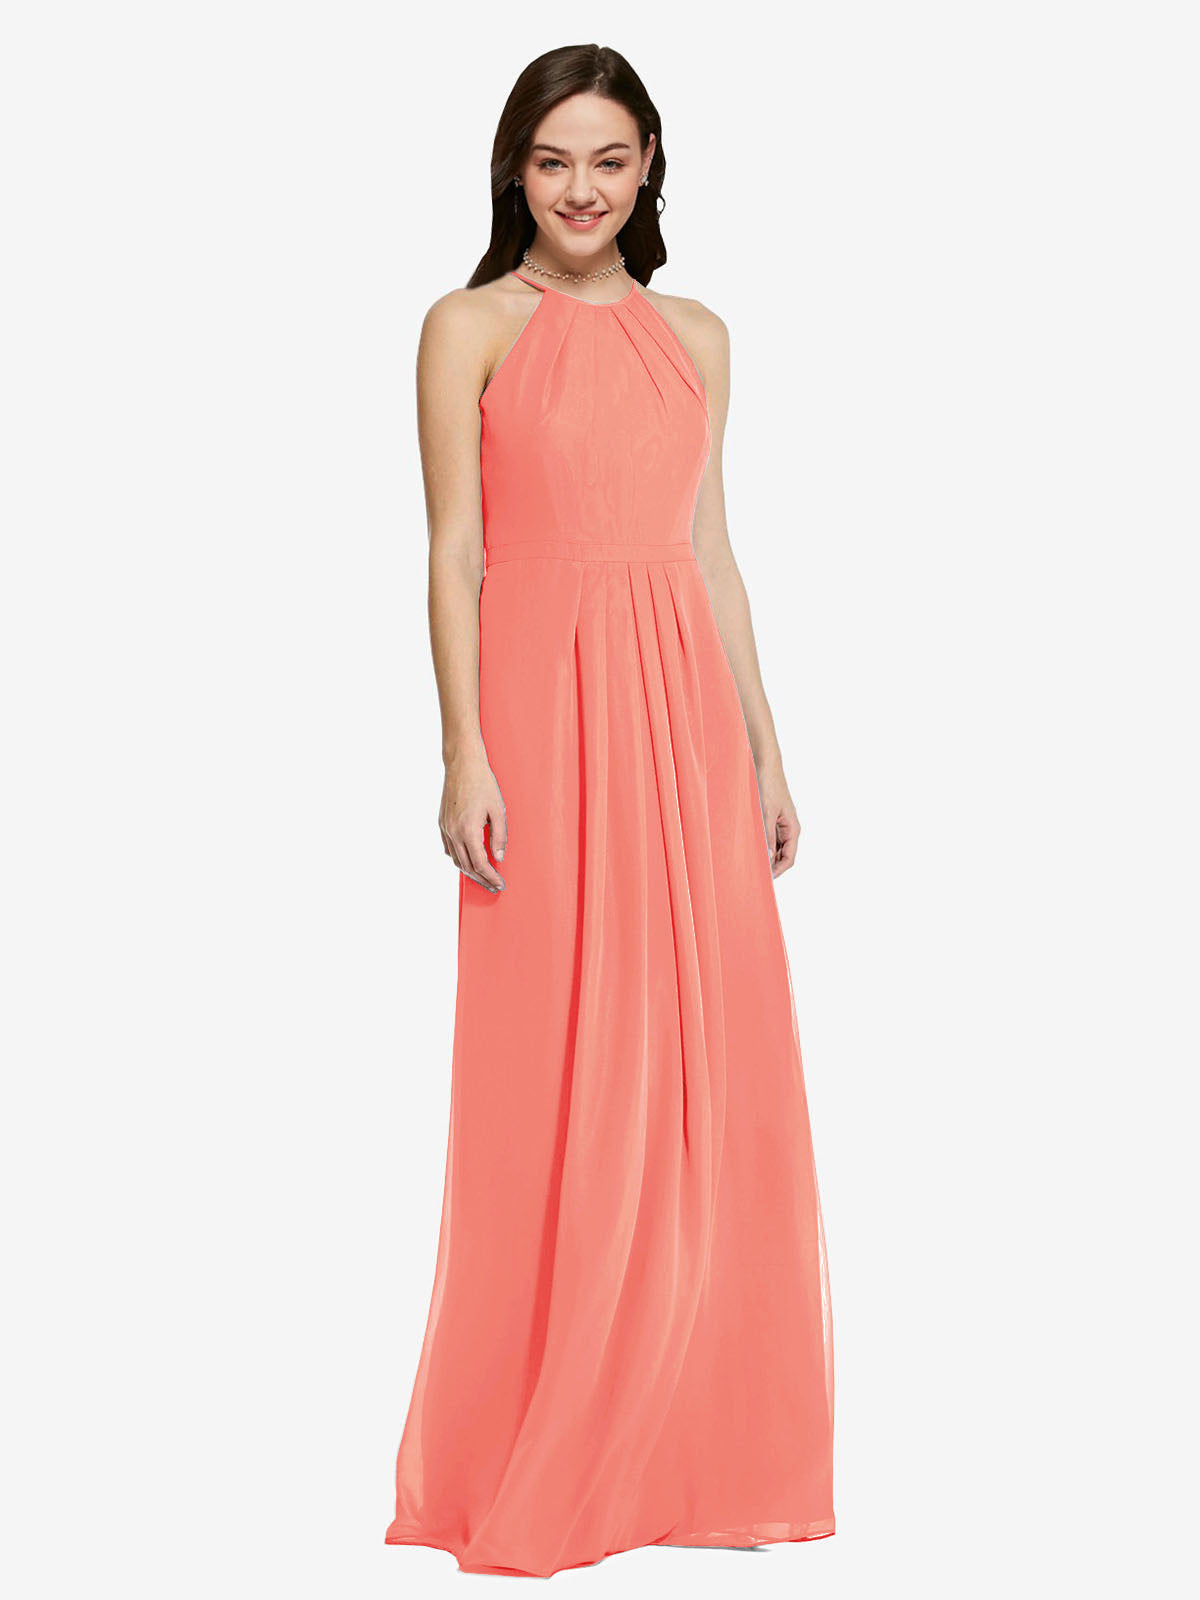 Long Sheath High Neck Halter Sleeveless Coral Chiffon Bridesmaid Dress Koloti